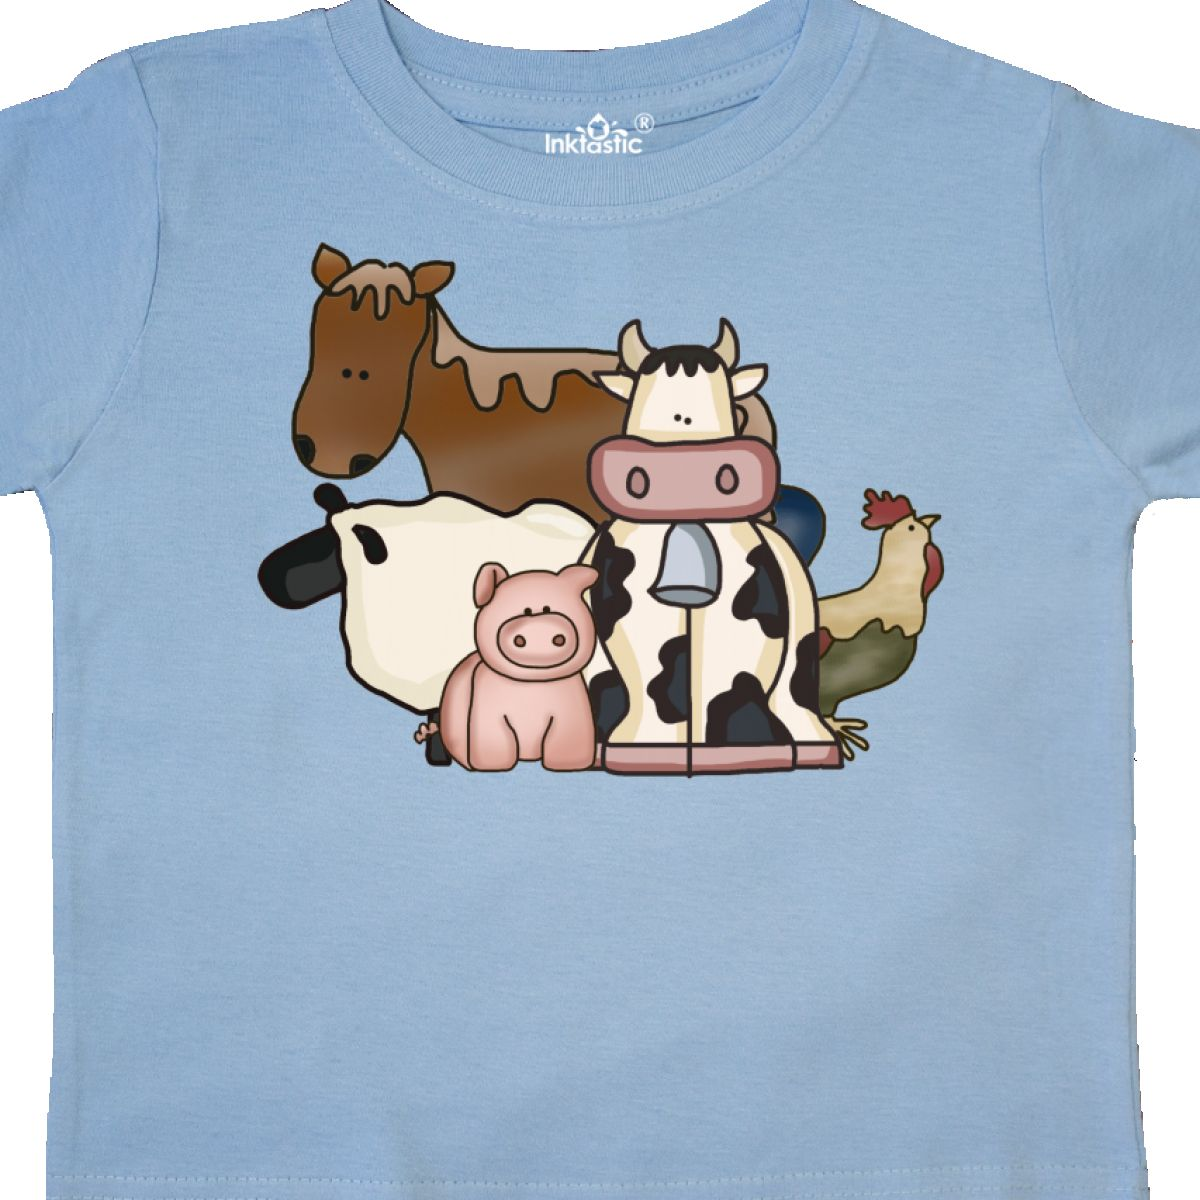 Inktastic-Critters-Toddler-T-Shirt-Horse-Sheep-Cow-Chicken-Pig-Farm-Animals-Gift thumbnail 20